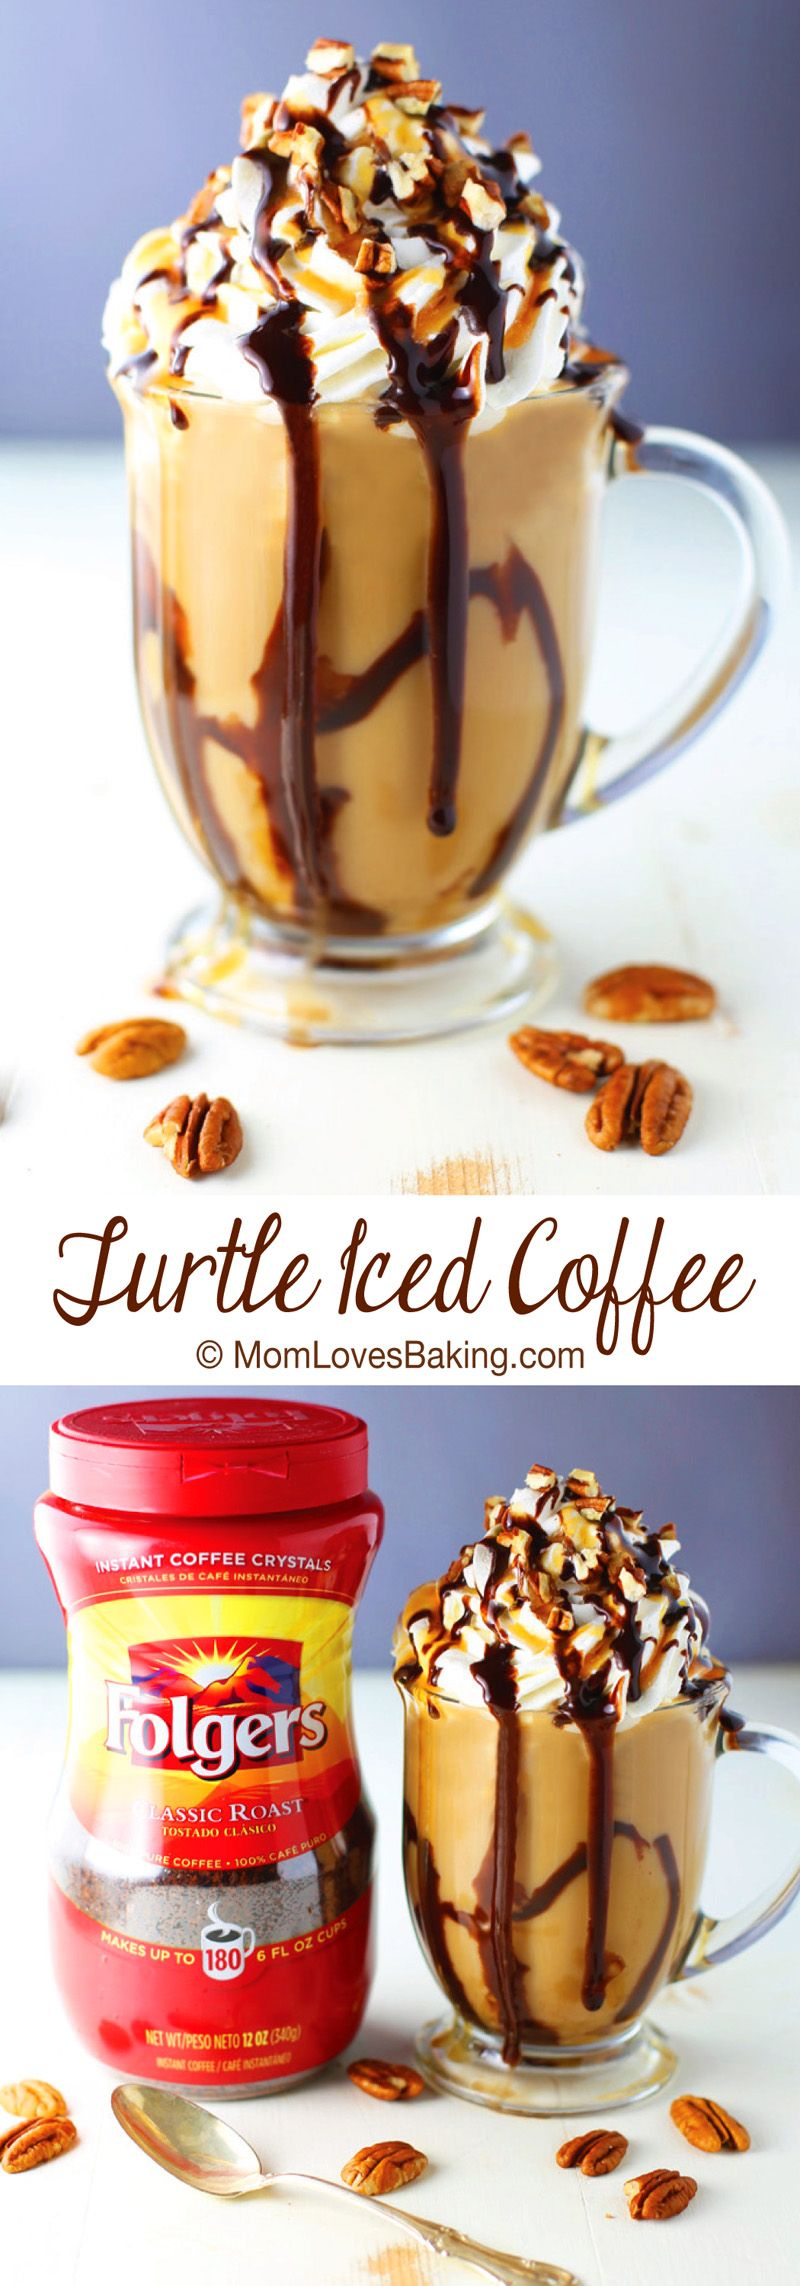 Photo of Turtle Iced Coffee